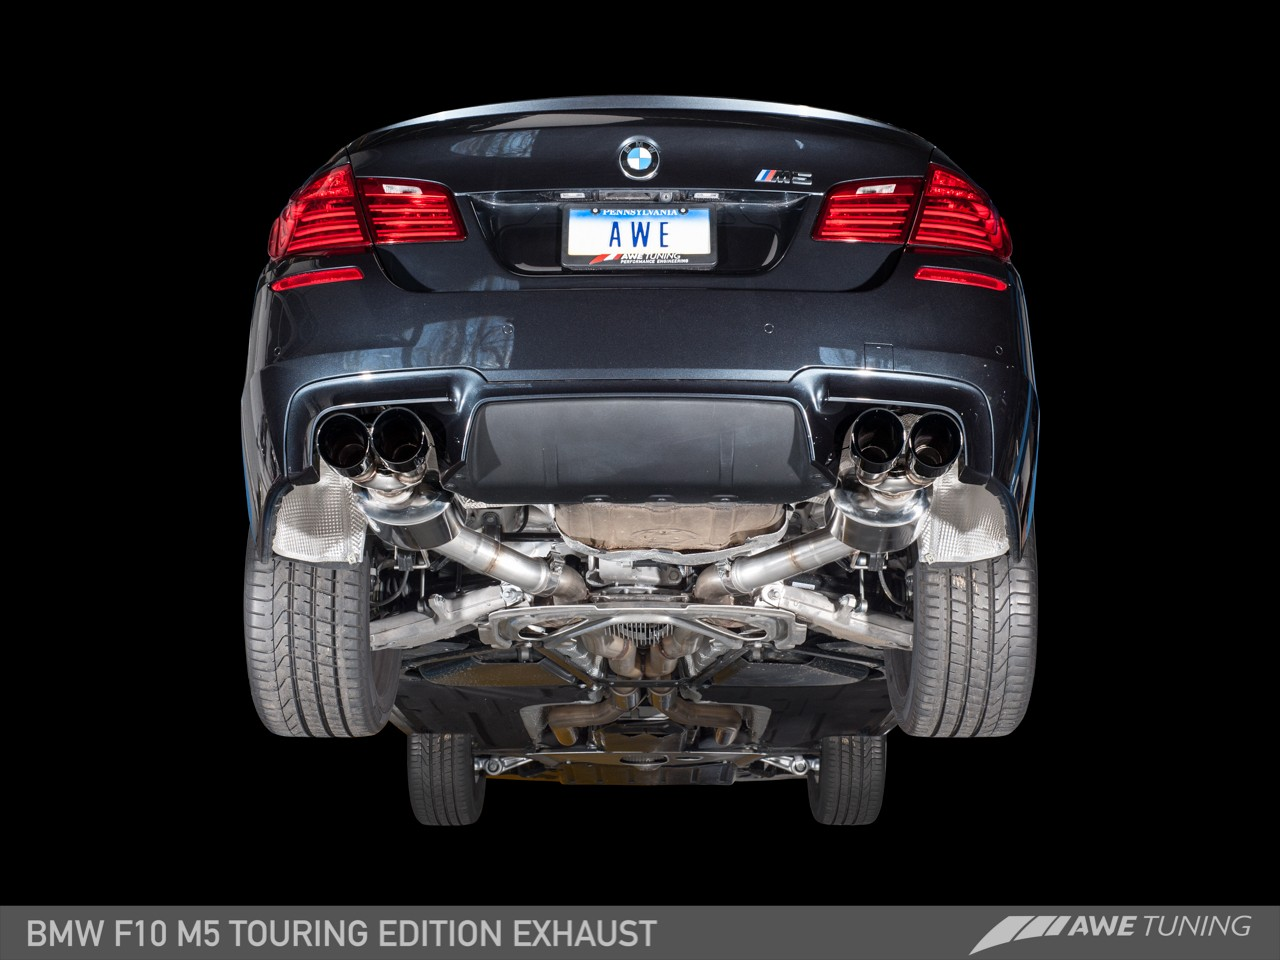 Awe Touring Edition Exhaust For Bmw F10 M5 Awe